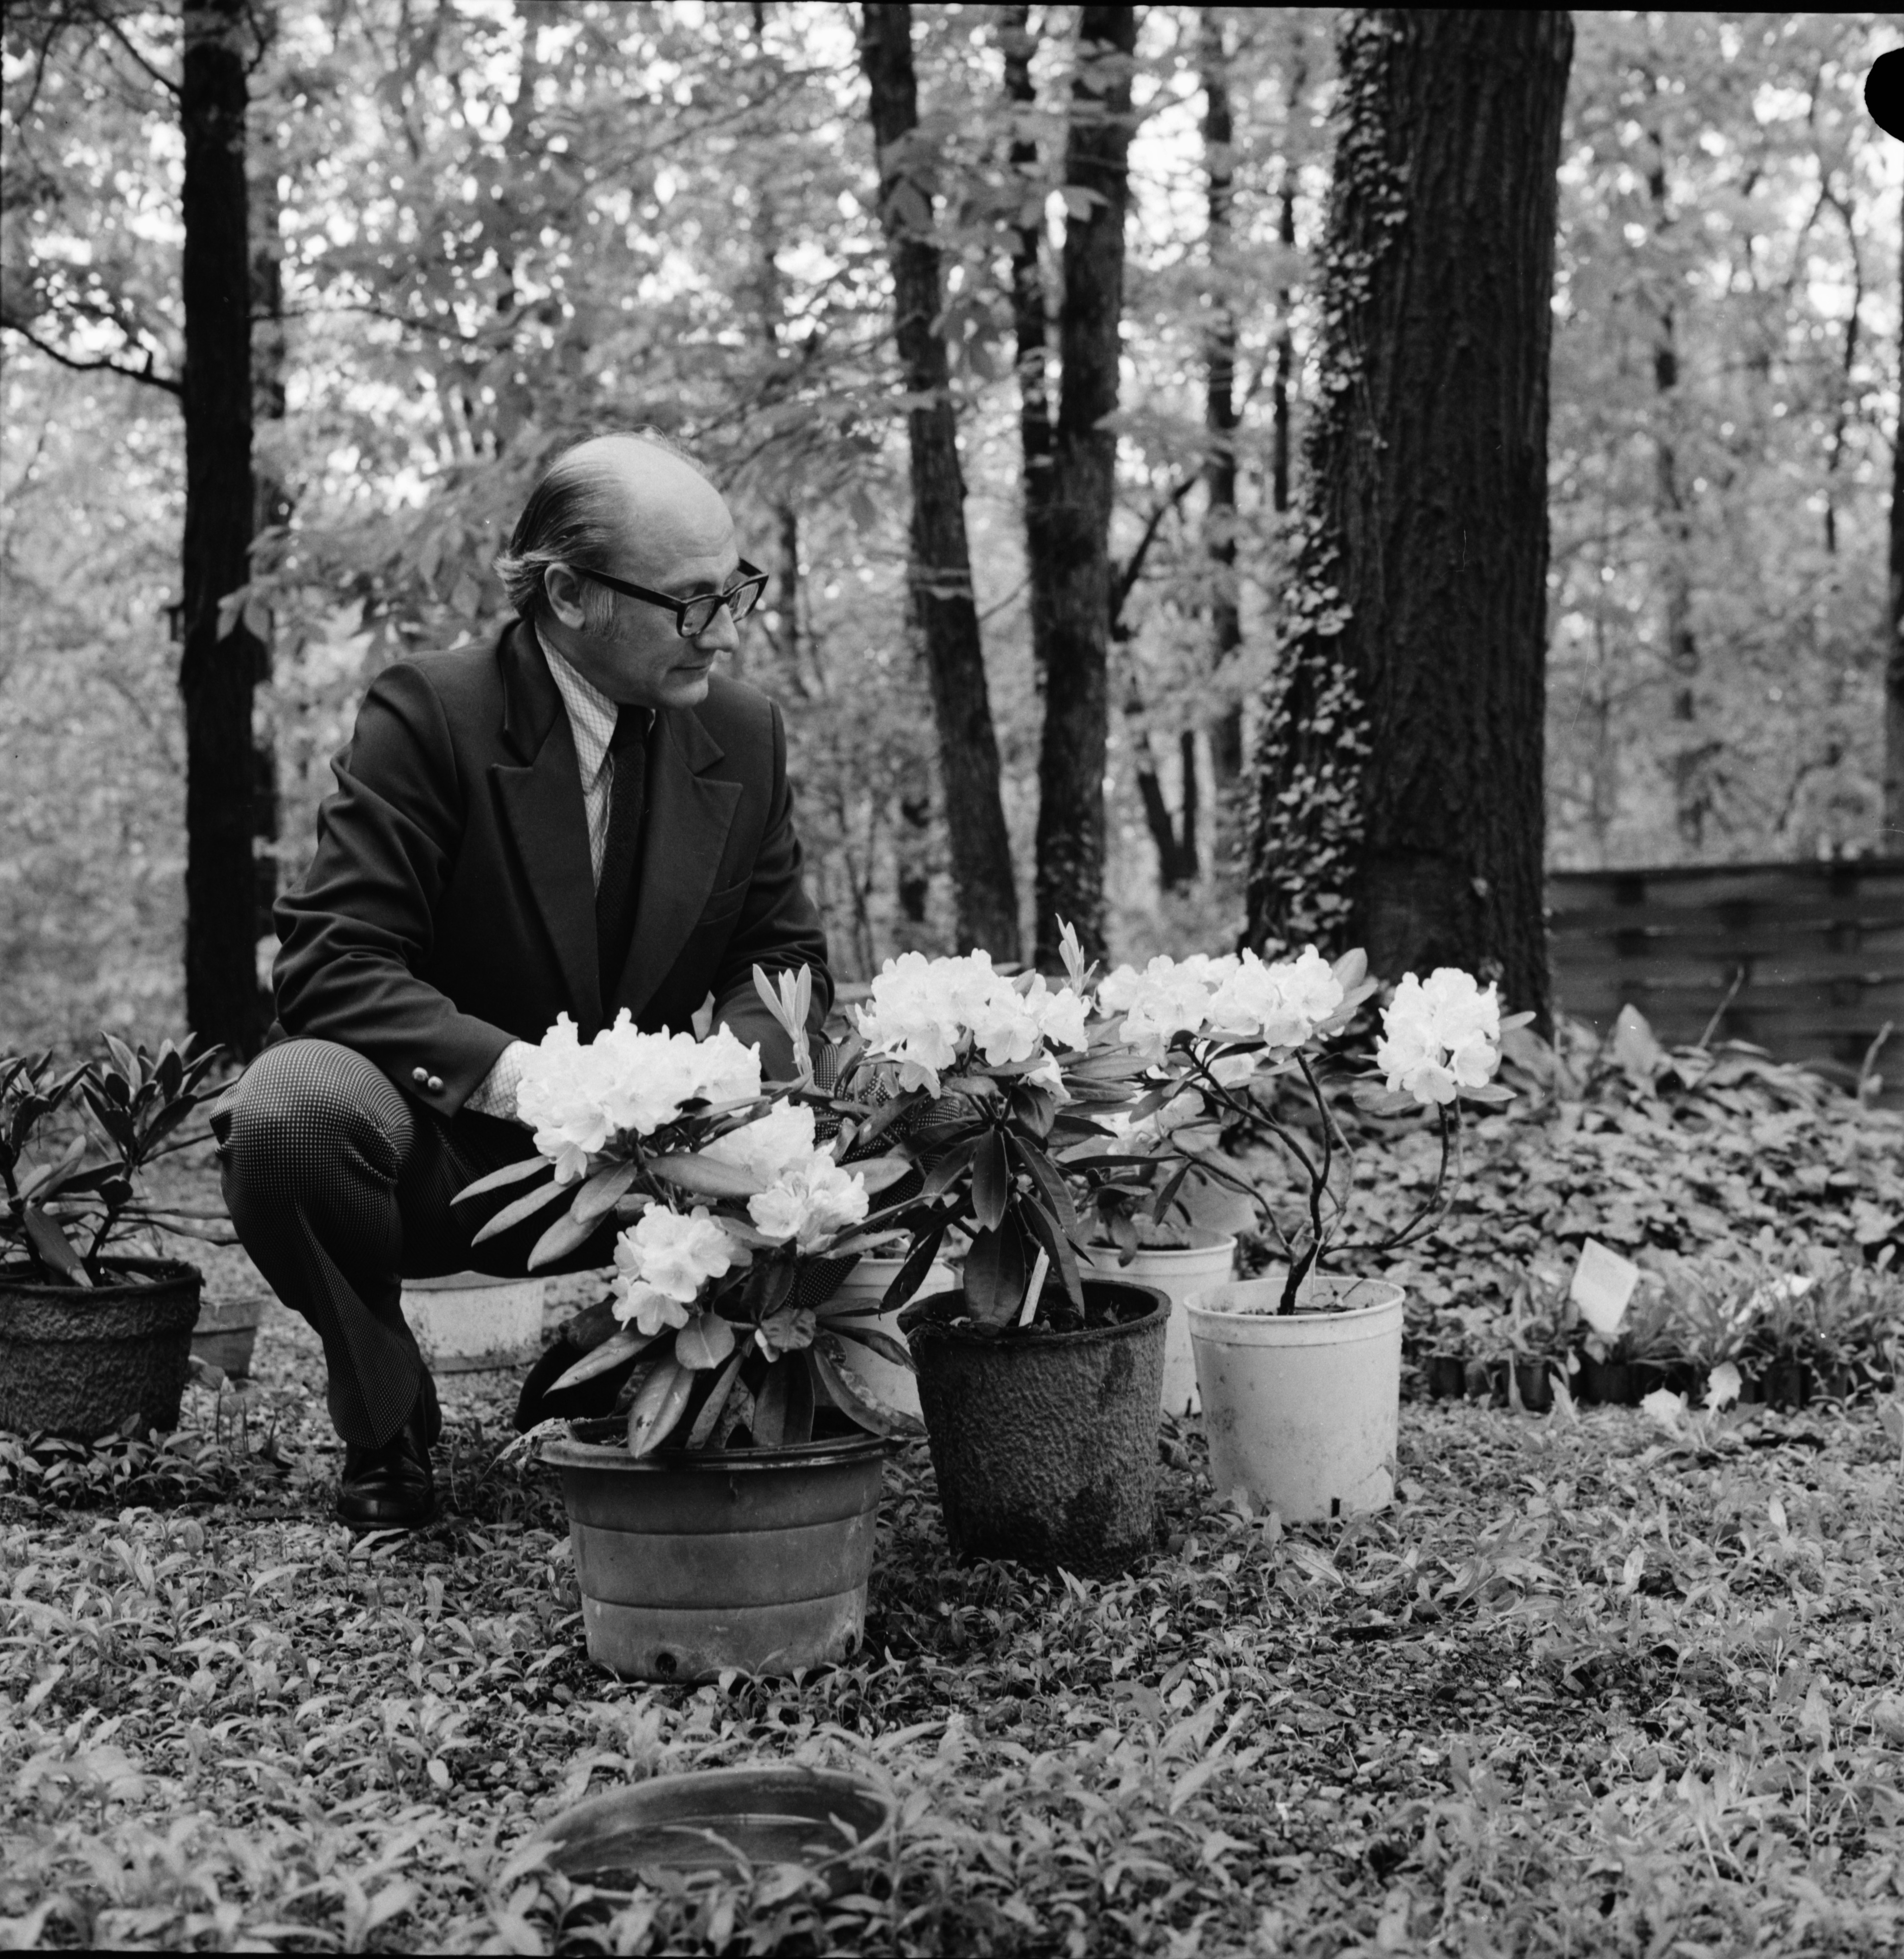 Dr. Robert E. Moyers and Rhododendrons, May 1973 image